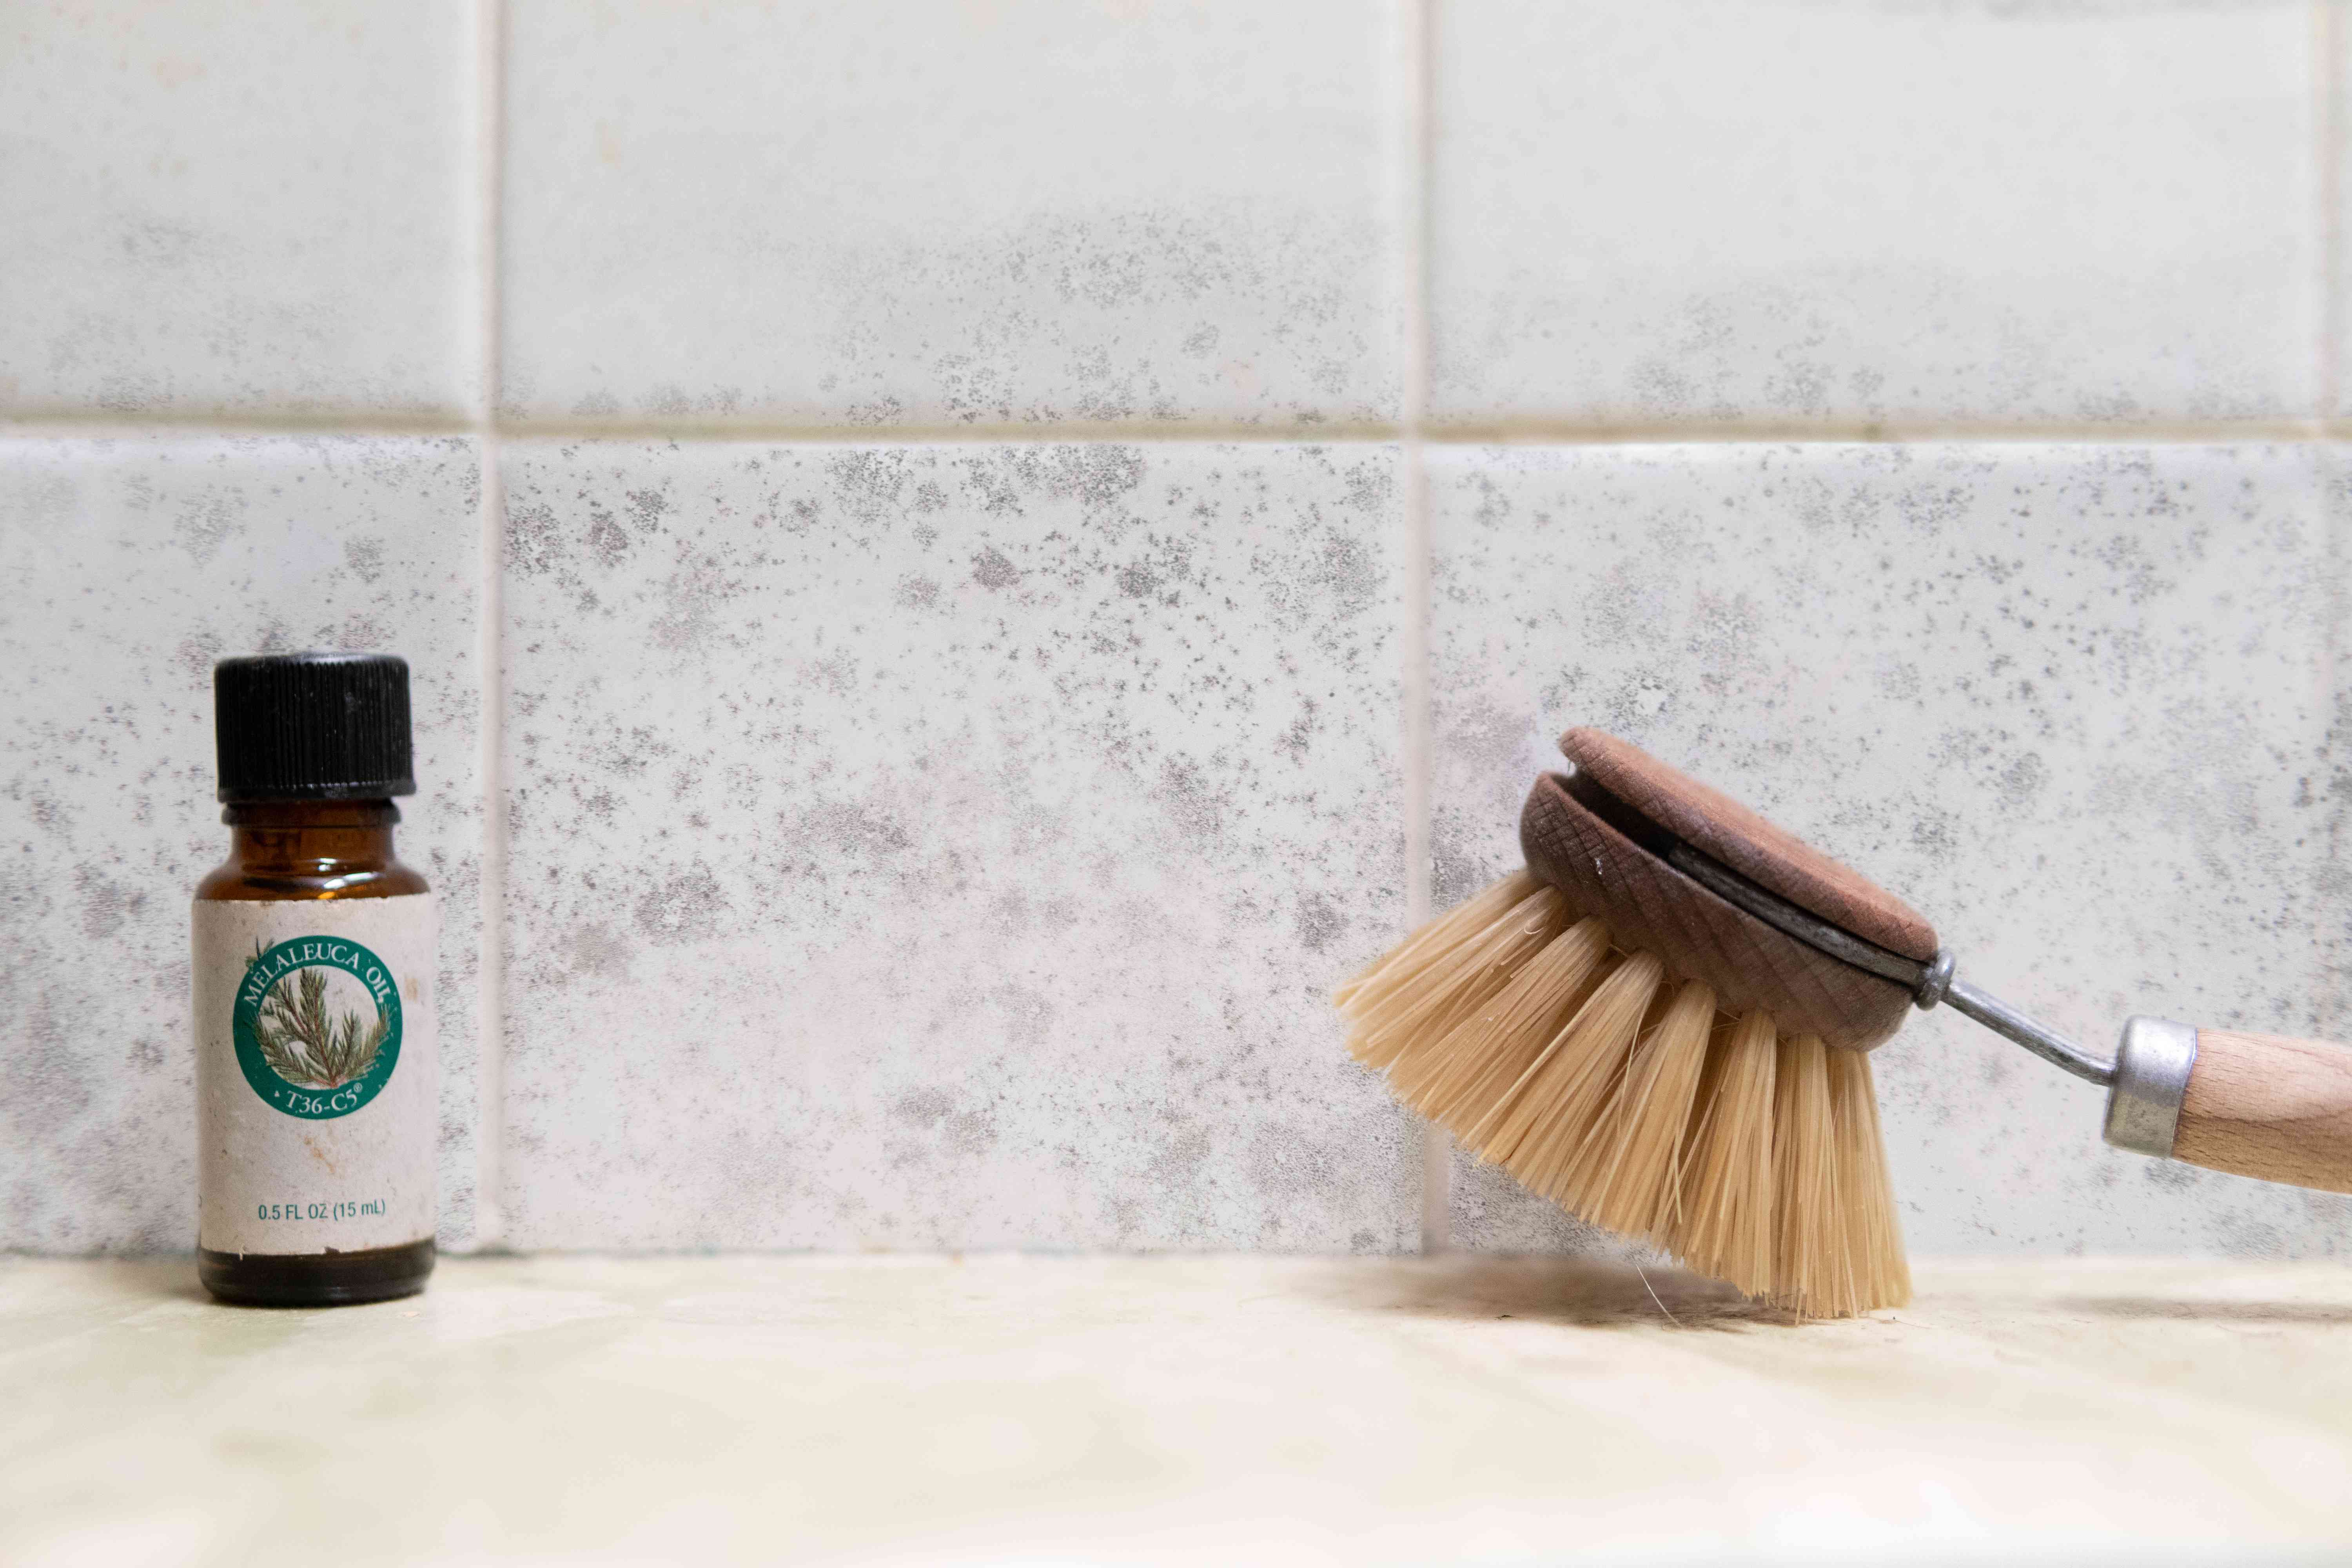 tea tree oil with wooden scrubber in shower